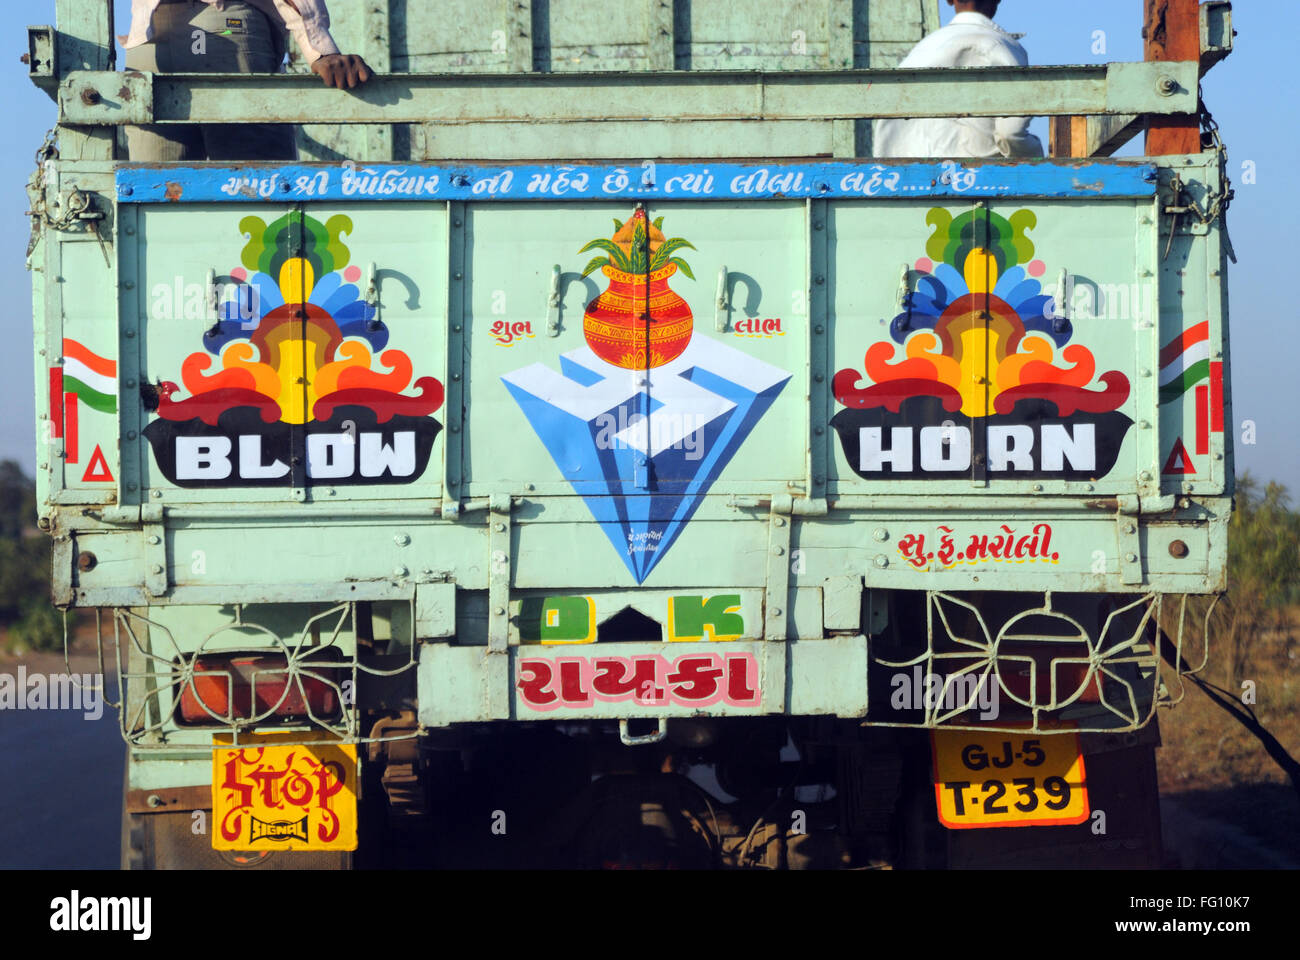 Truck with message blow ok horn painted at backside - Stock Image